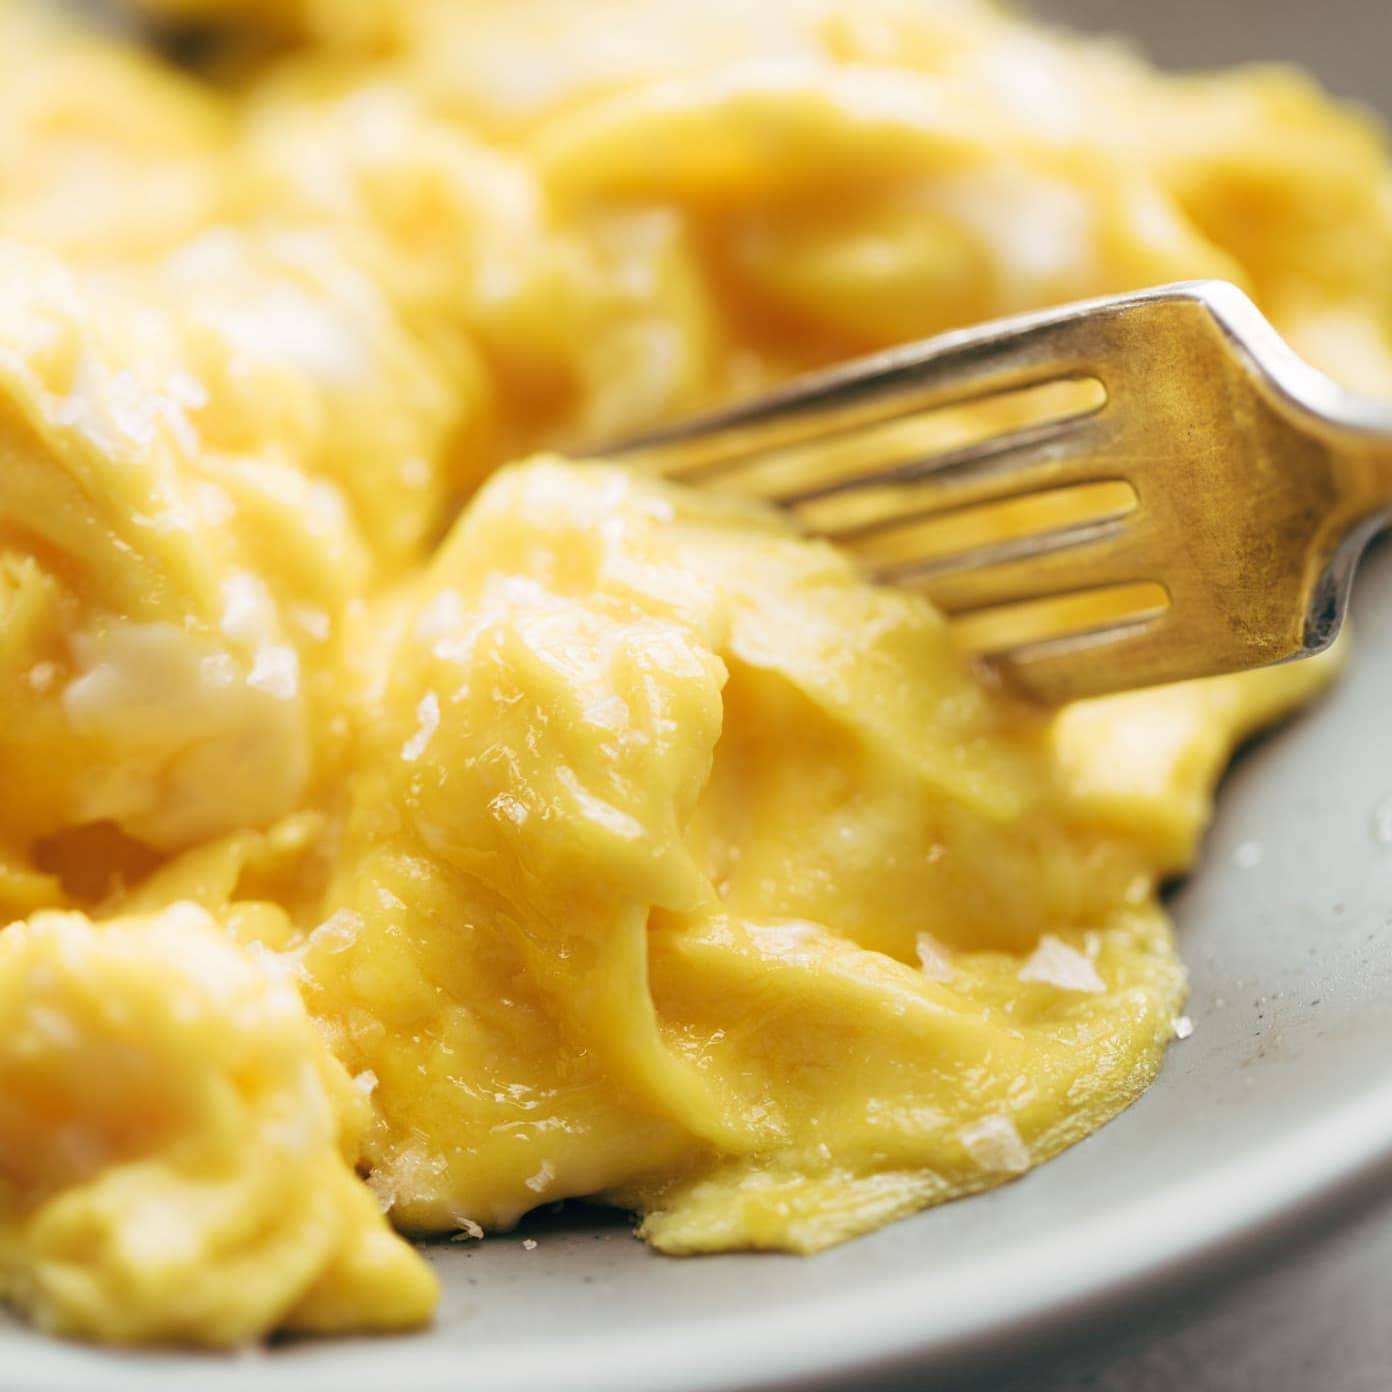 Soft Scrambled Eggs on plate with fork.